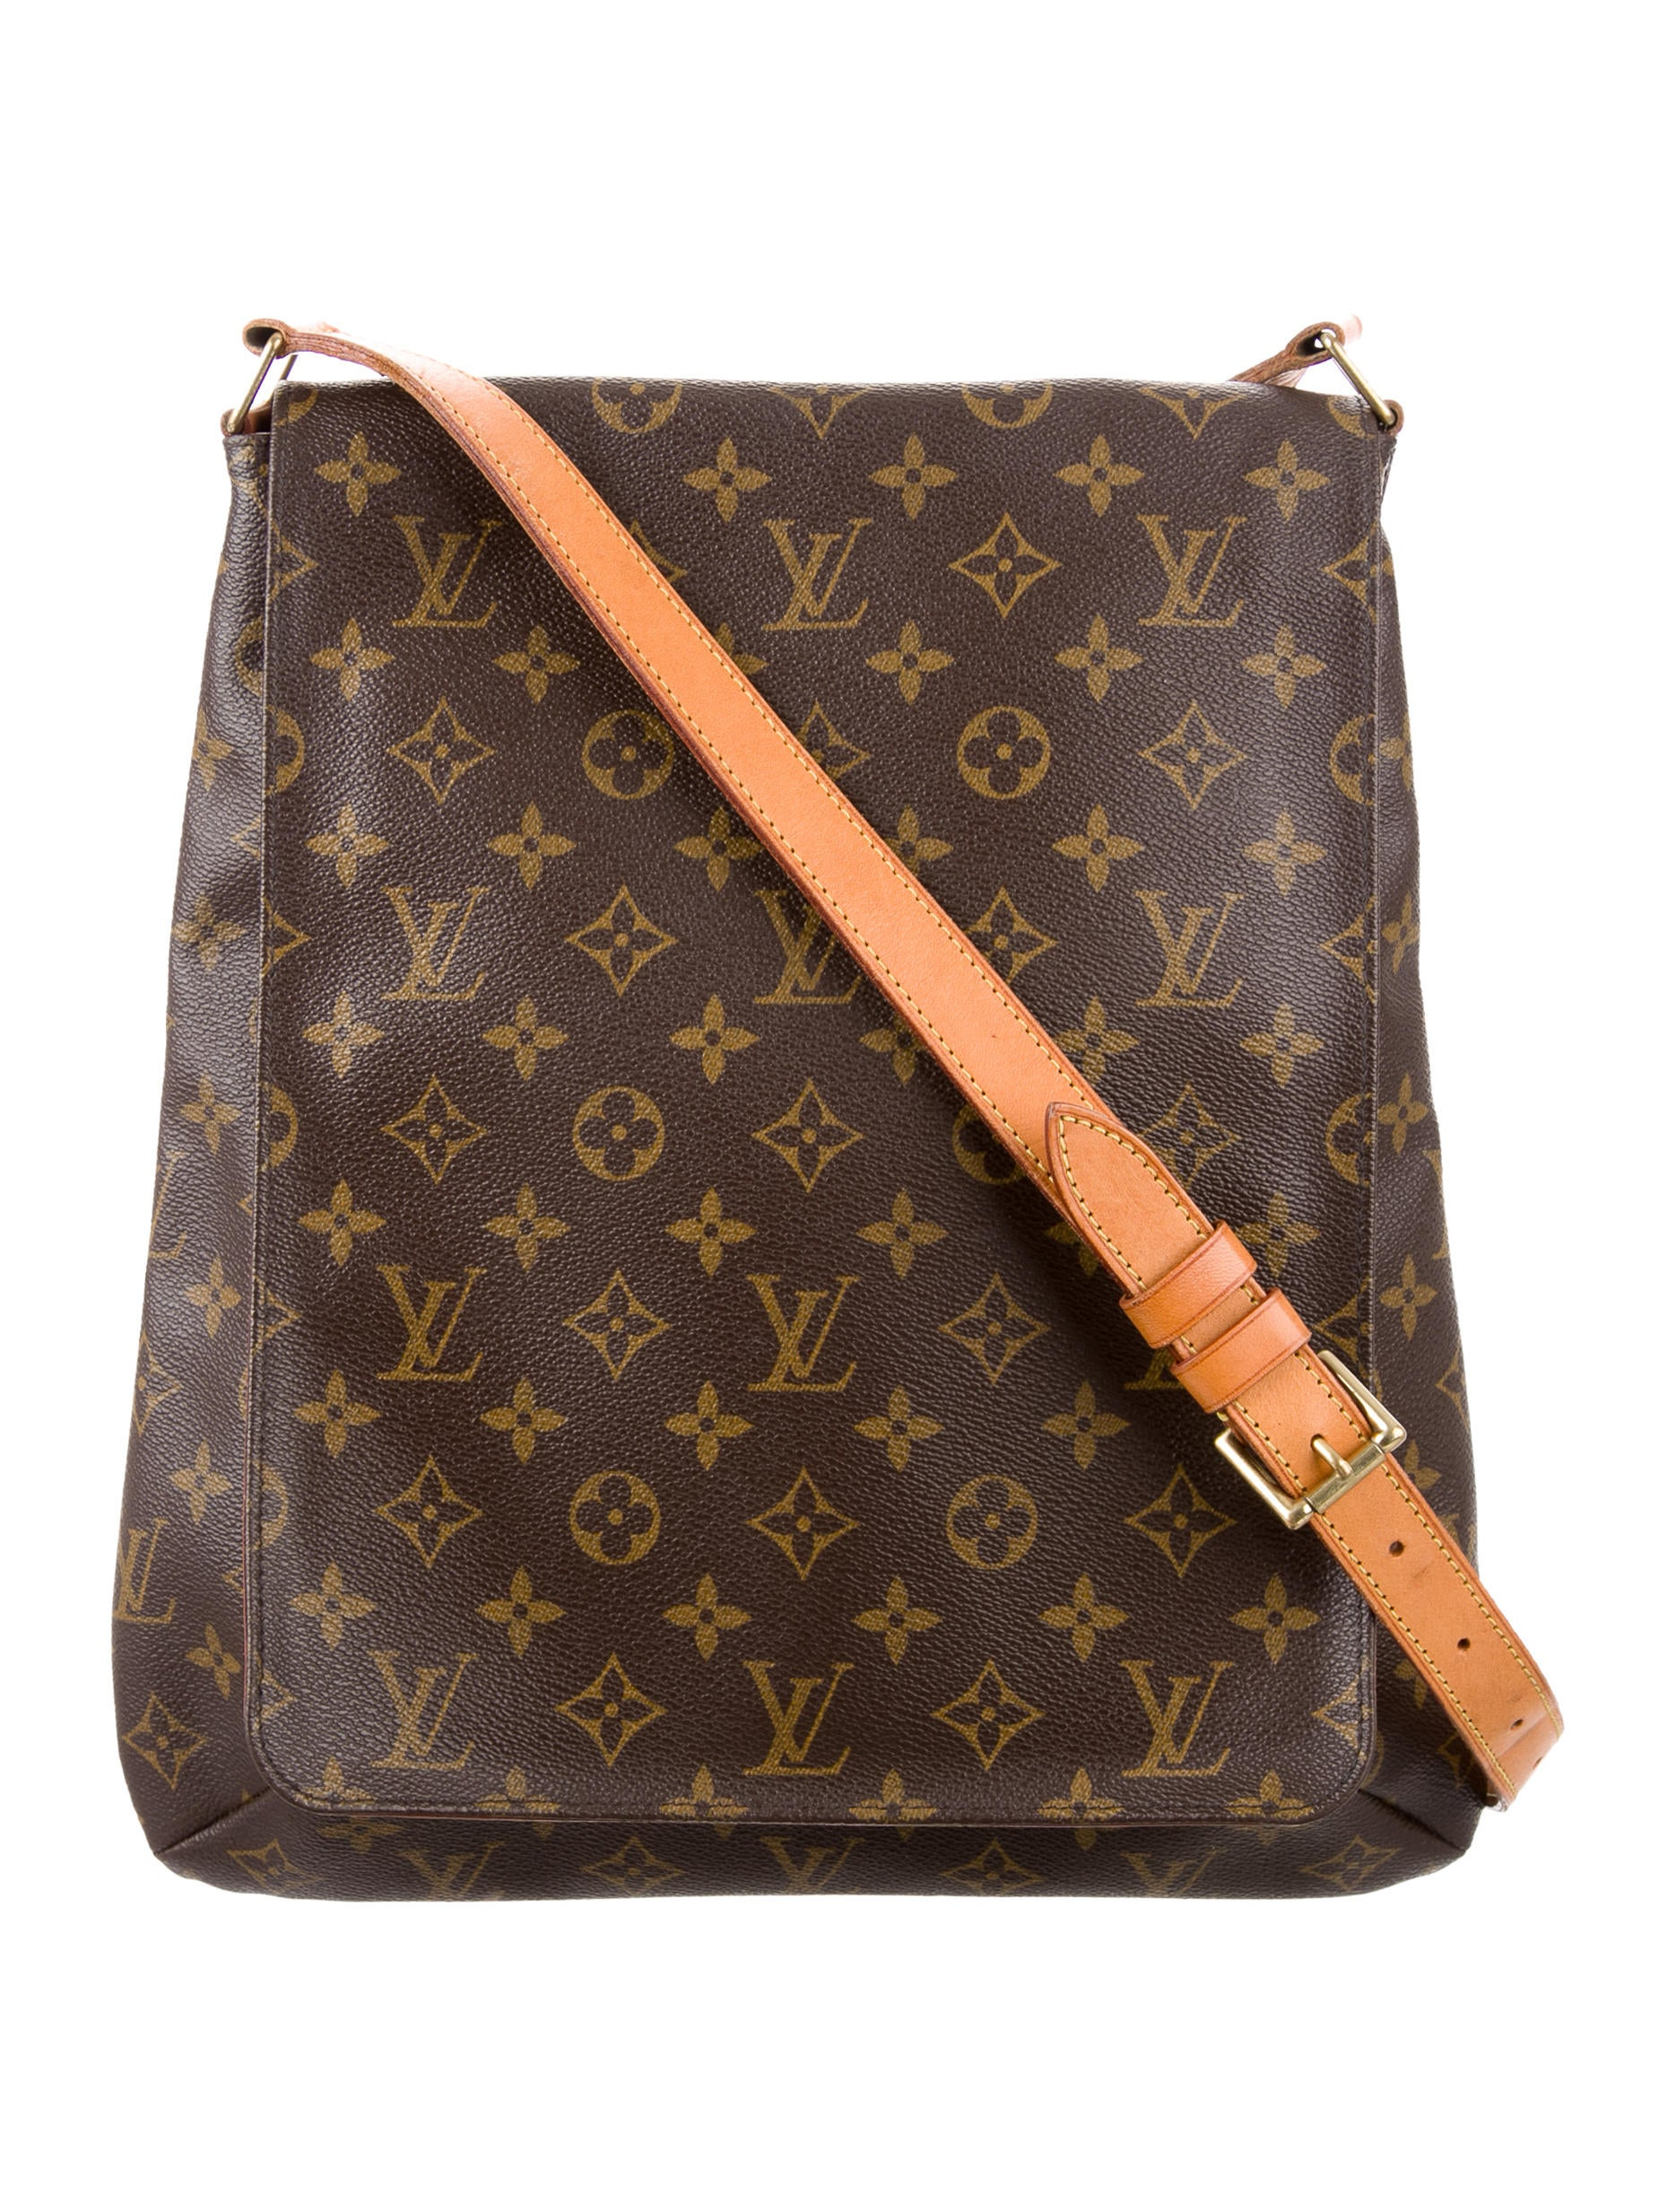 louis vuitton monogram musette salsa gm handbags lou123422 the realreal. Black Bedroom Furniture Sets. Home Design Ideas